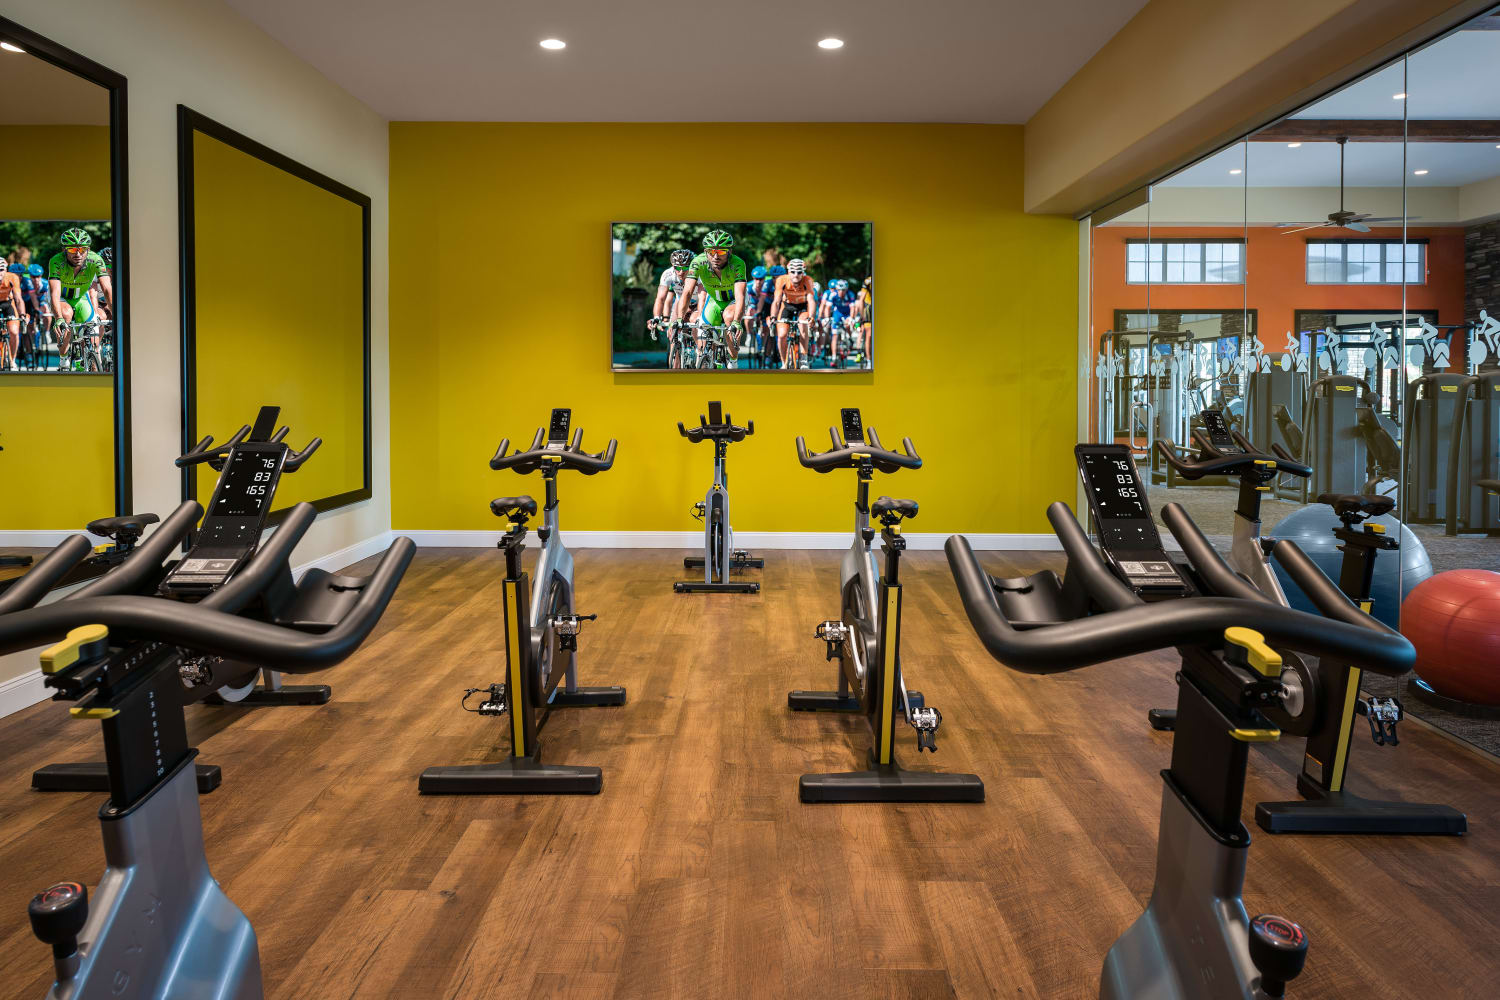 Fitness Center Spin Room at San Valencia in Chandler, Arizona